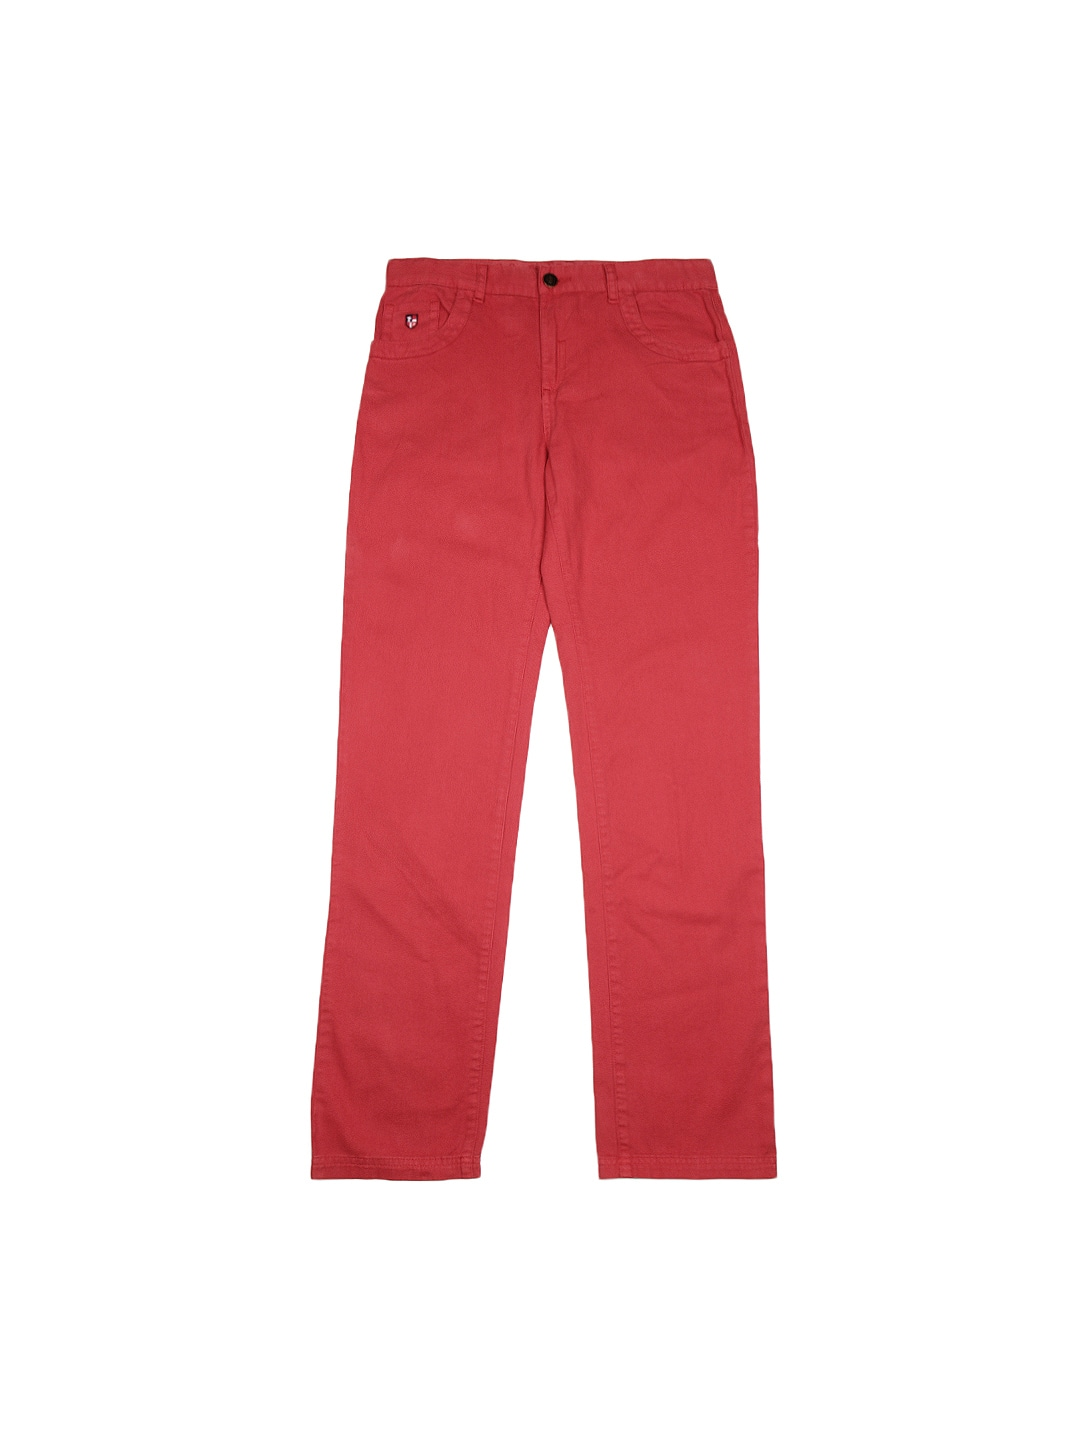 Boys' Red Pants come multi-colored as well as in other colors. Be on the lookout for assorted materials including polyester. Boys' pants come in new or previously owned condition, so you can see your savings grow. eBay is a great way to find Boys' Red Pants since you can filter results by category and take into account seller feedback.